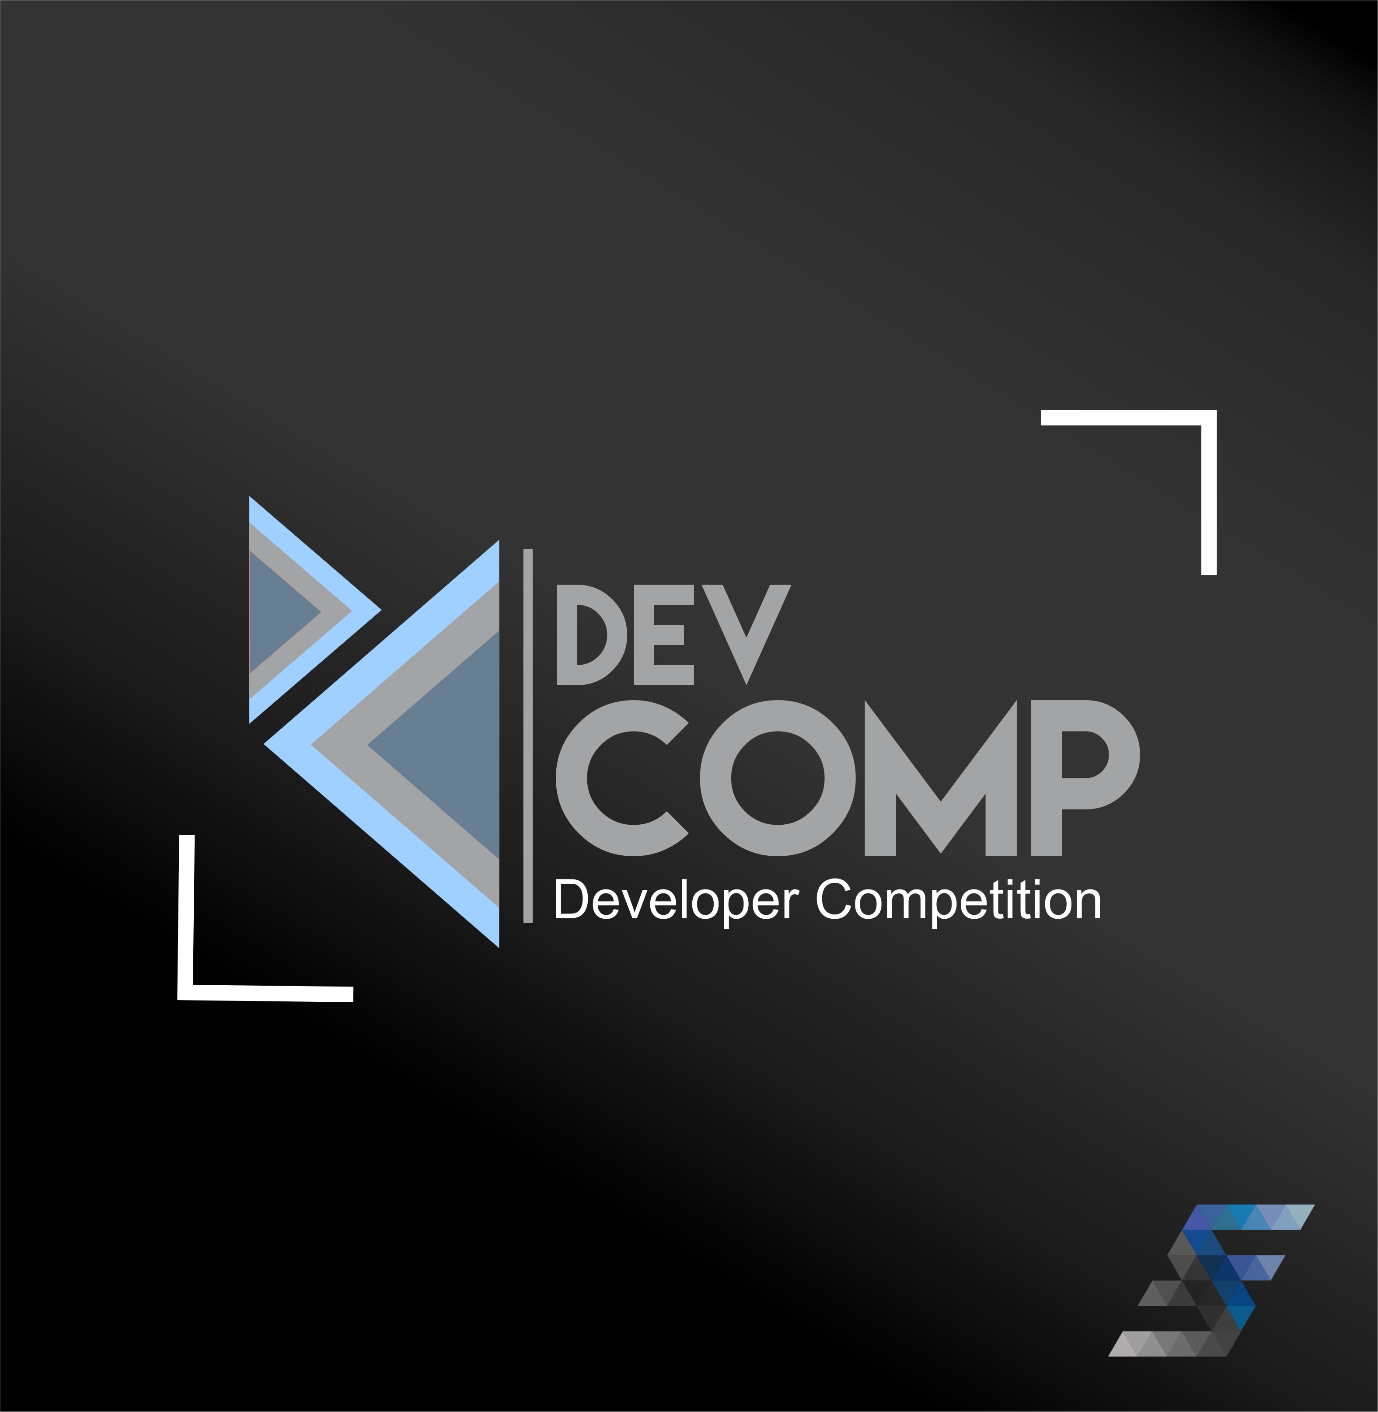 DevComp (Developer Competition) – FTIf Festival ITS